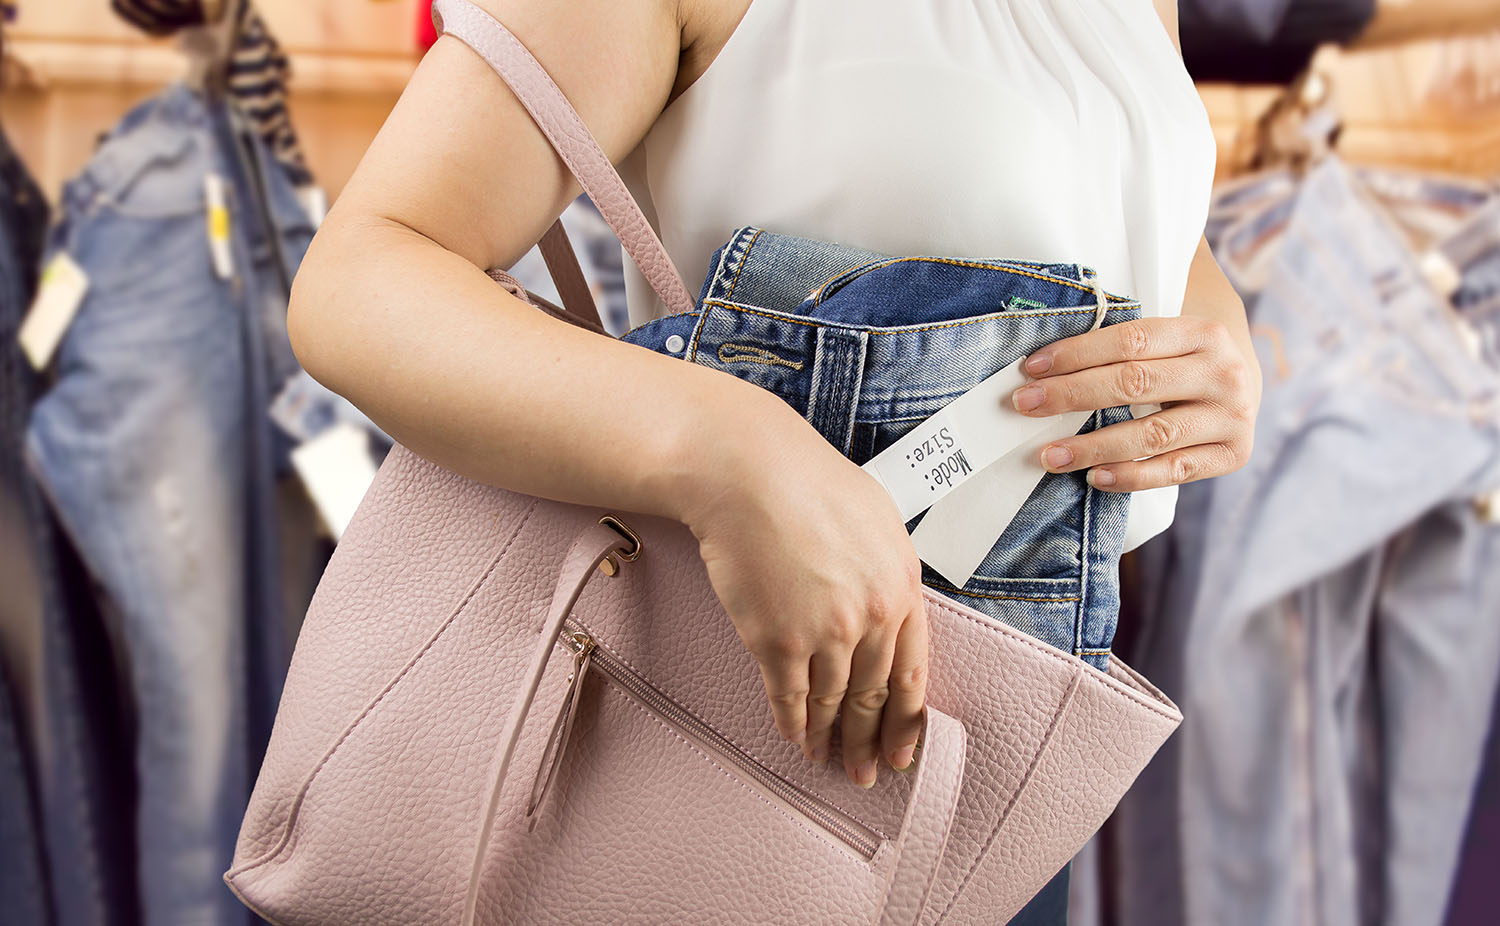 What is the Punishment for Shoplifting in Arizona?